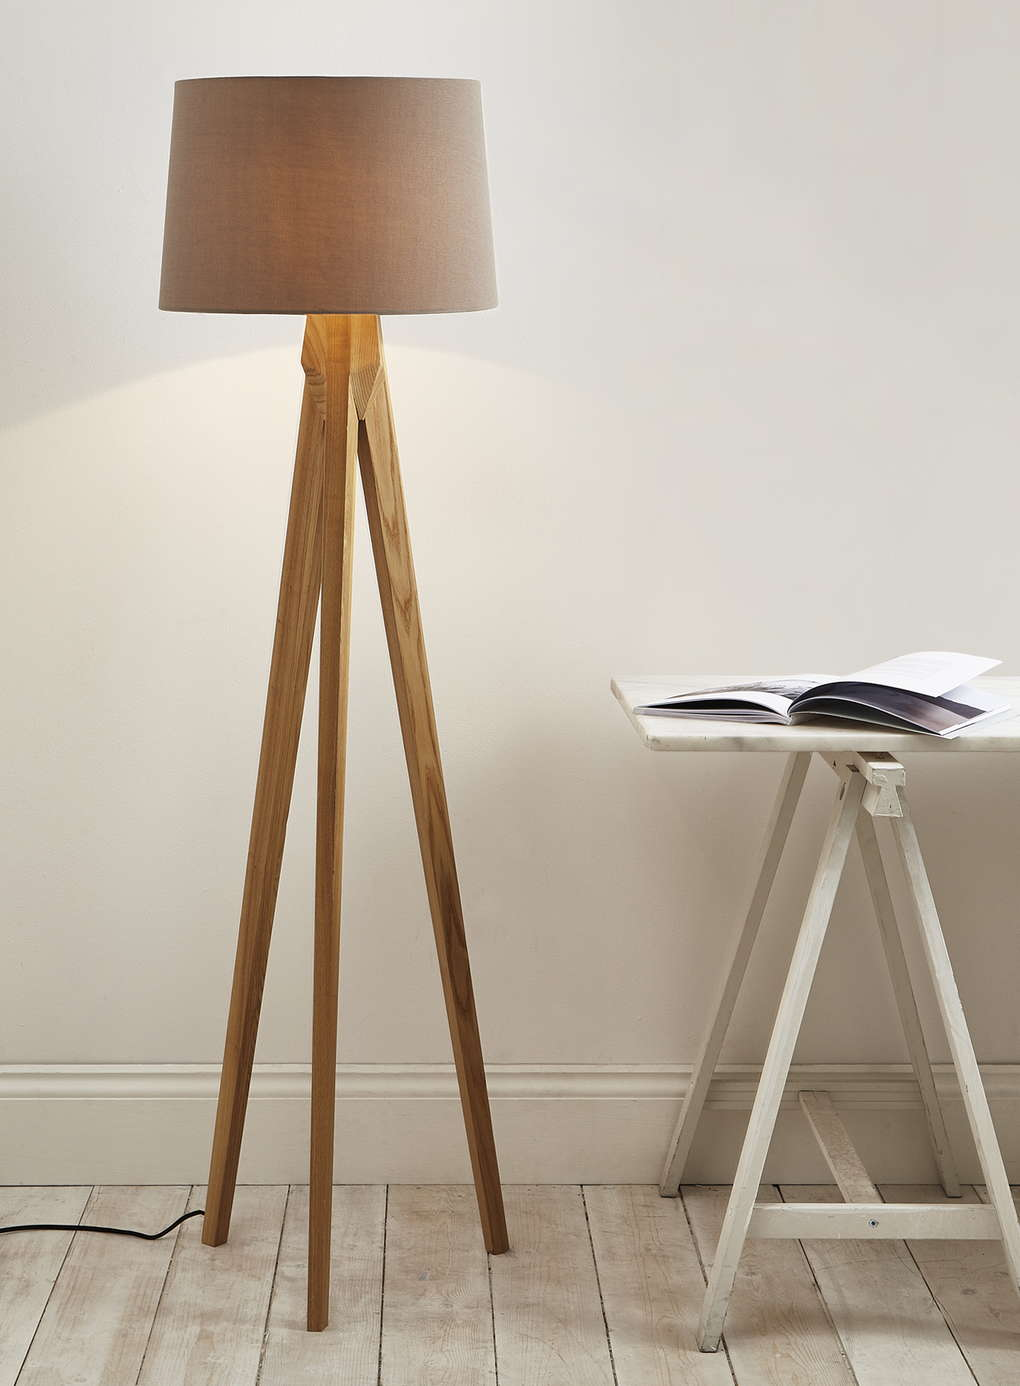 Floor Lamp Tripod | Royal Marine Tripod Floor Lamp | Tripod Lamp